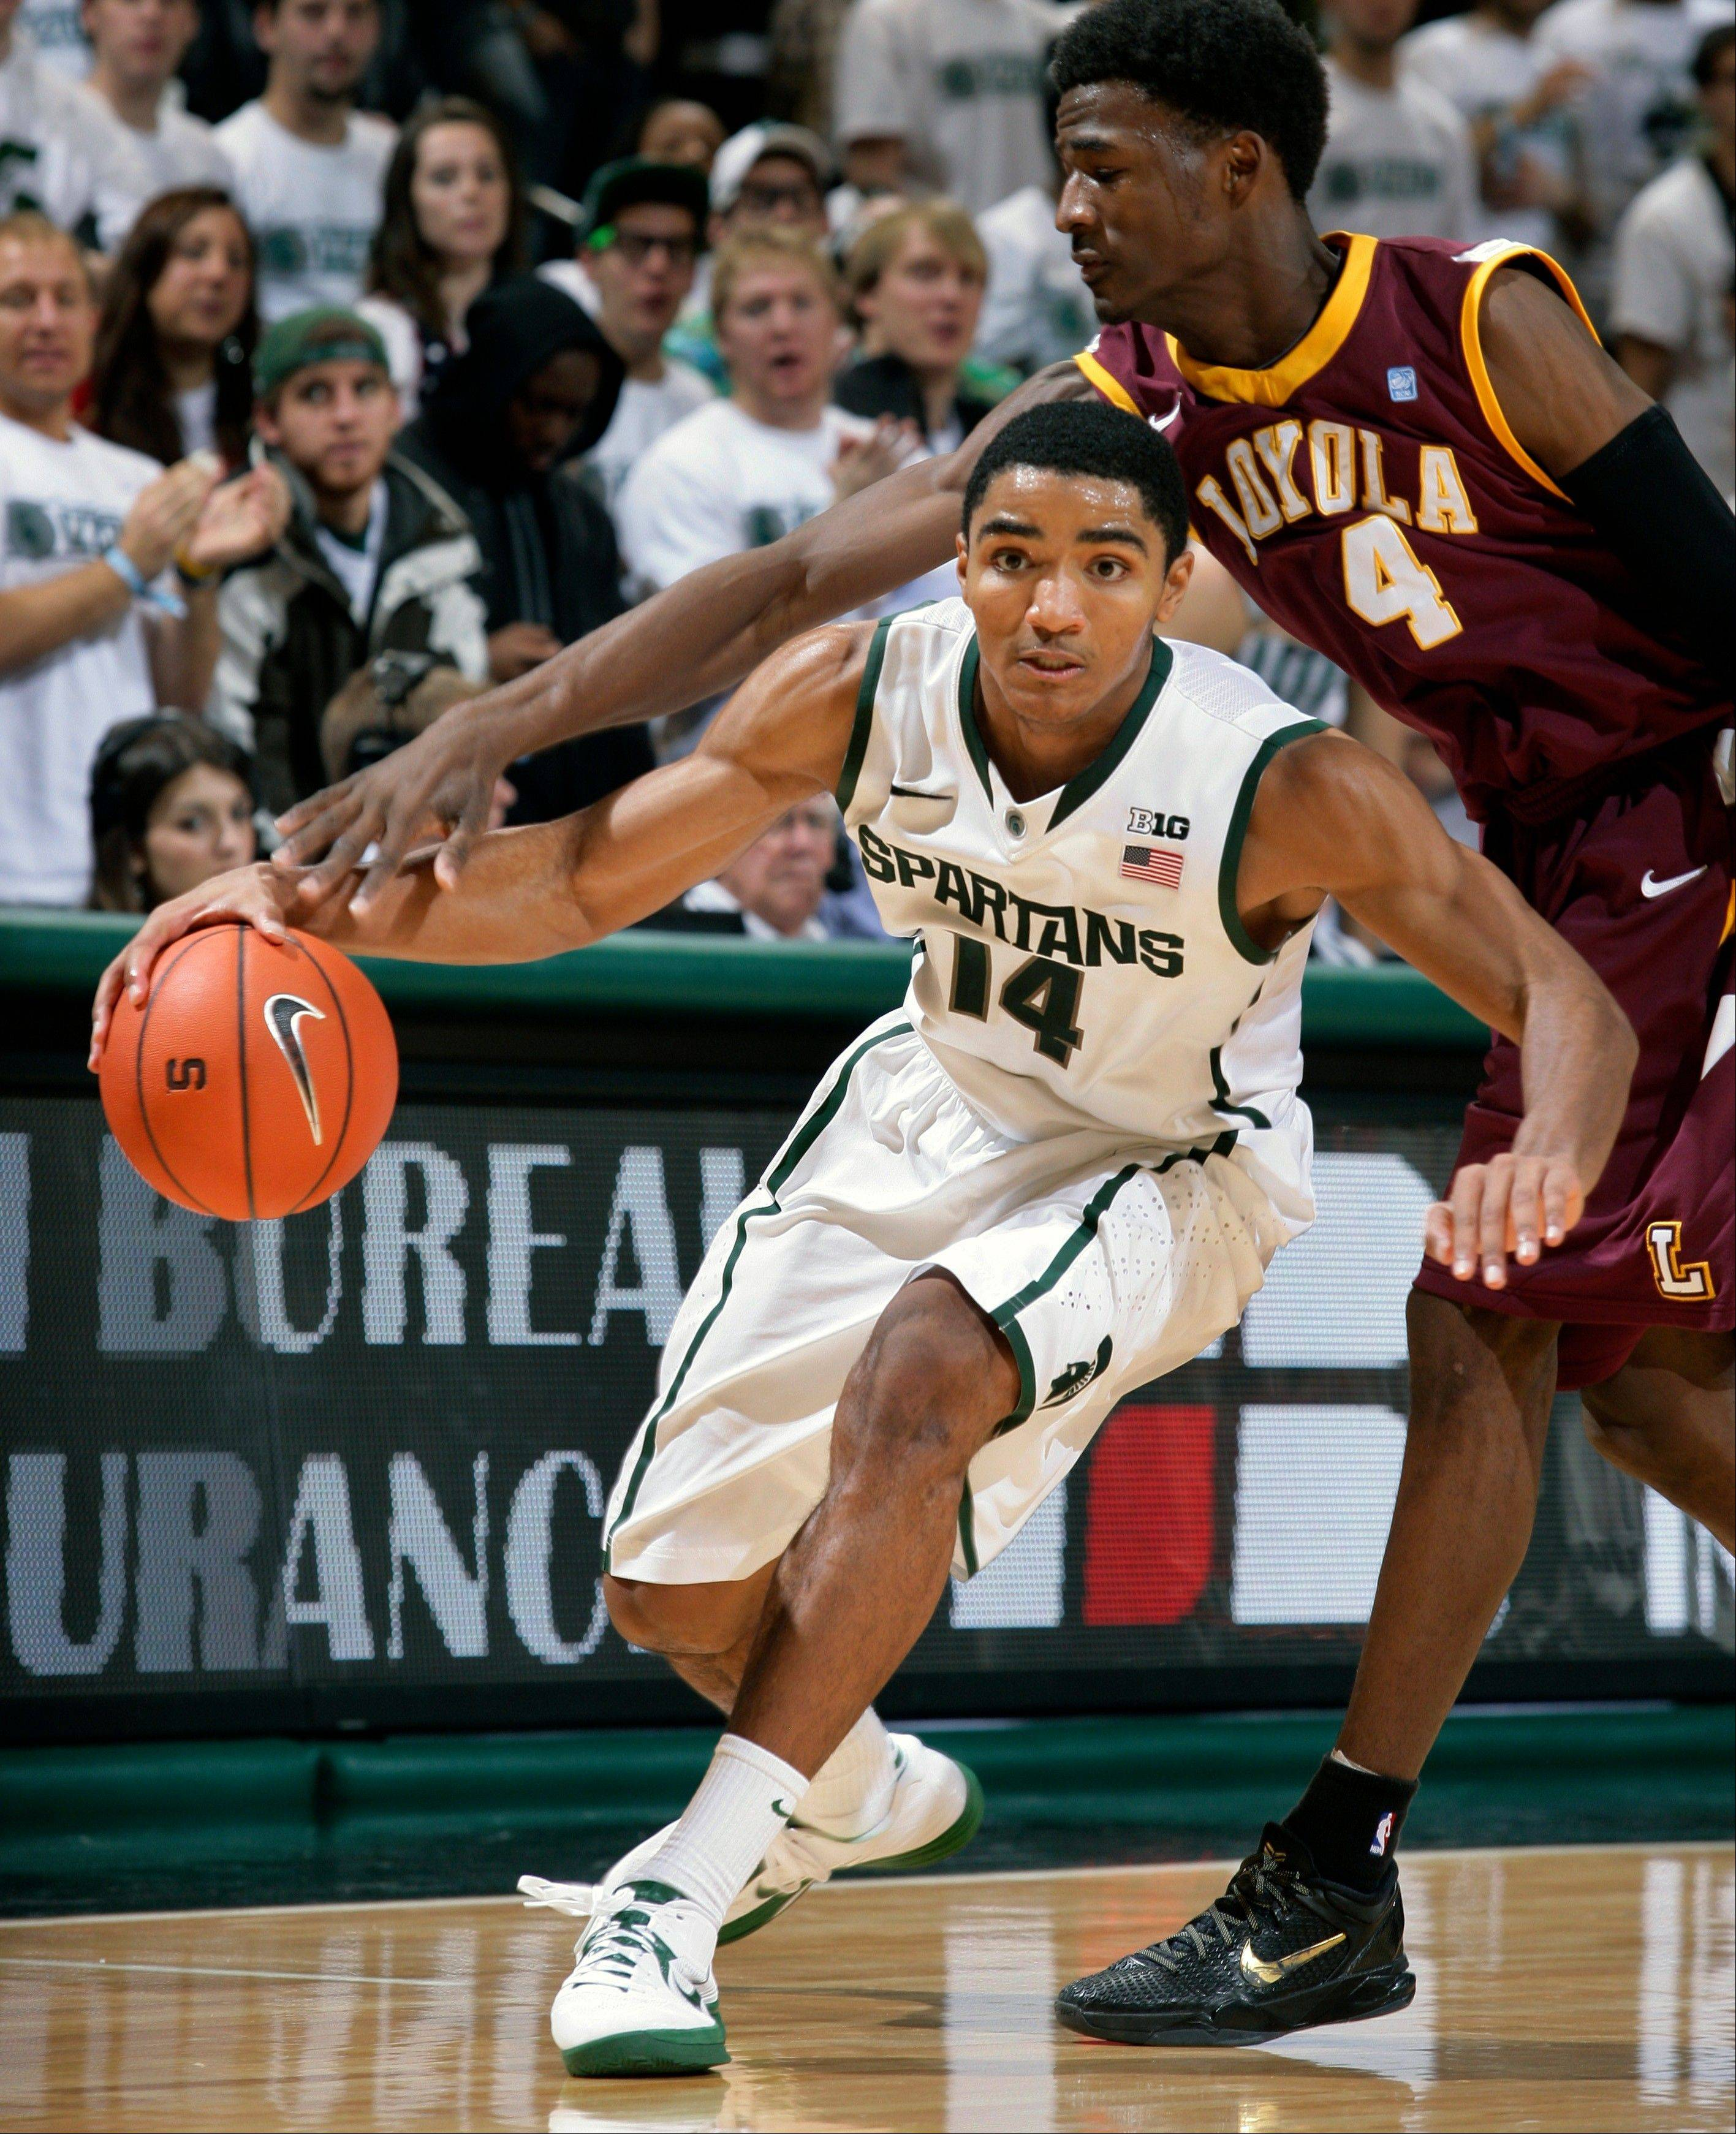 Michigan State�s Gary Harris (14) drives against Loyola�s Devon Turk during the second half Saturday in East Lansing, Mich. Harris led Michigan State with 20 points in a 73-61 win.